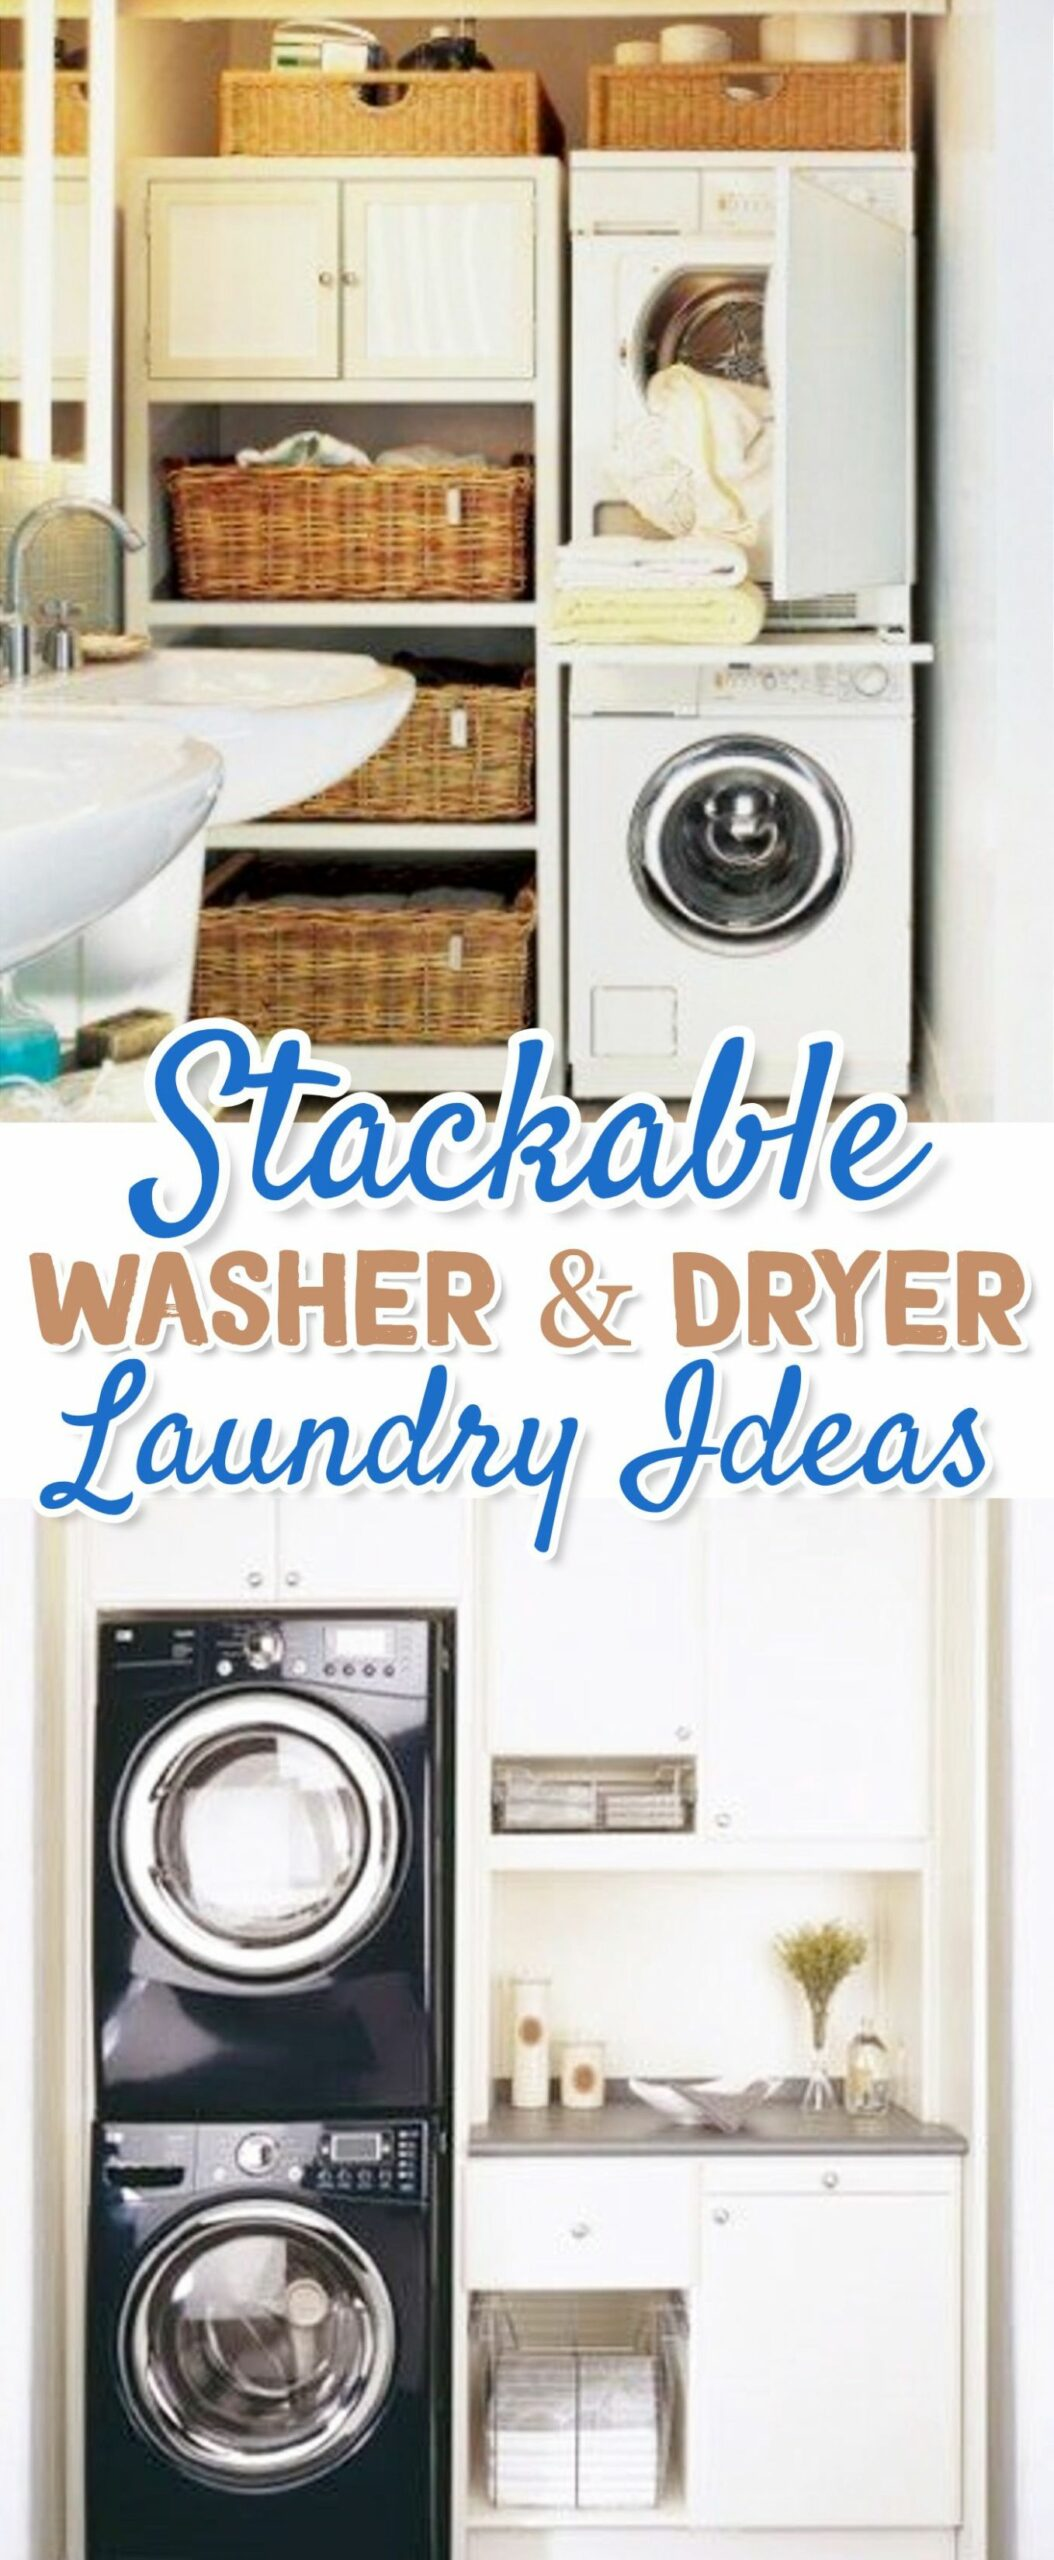 Small Laundry Room Ideas - Space Saving Ideas for Tiny Laundry ...